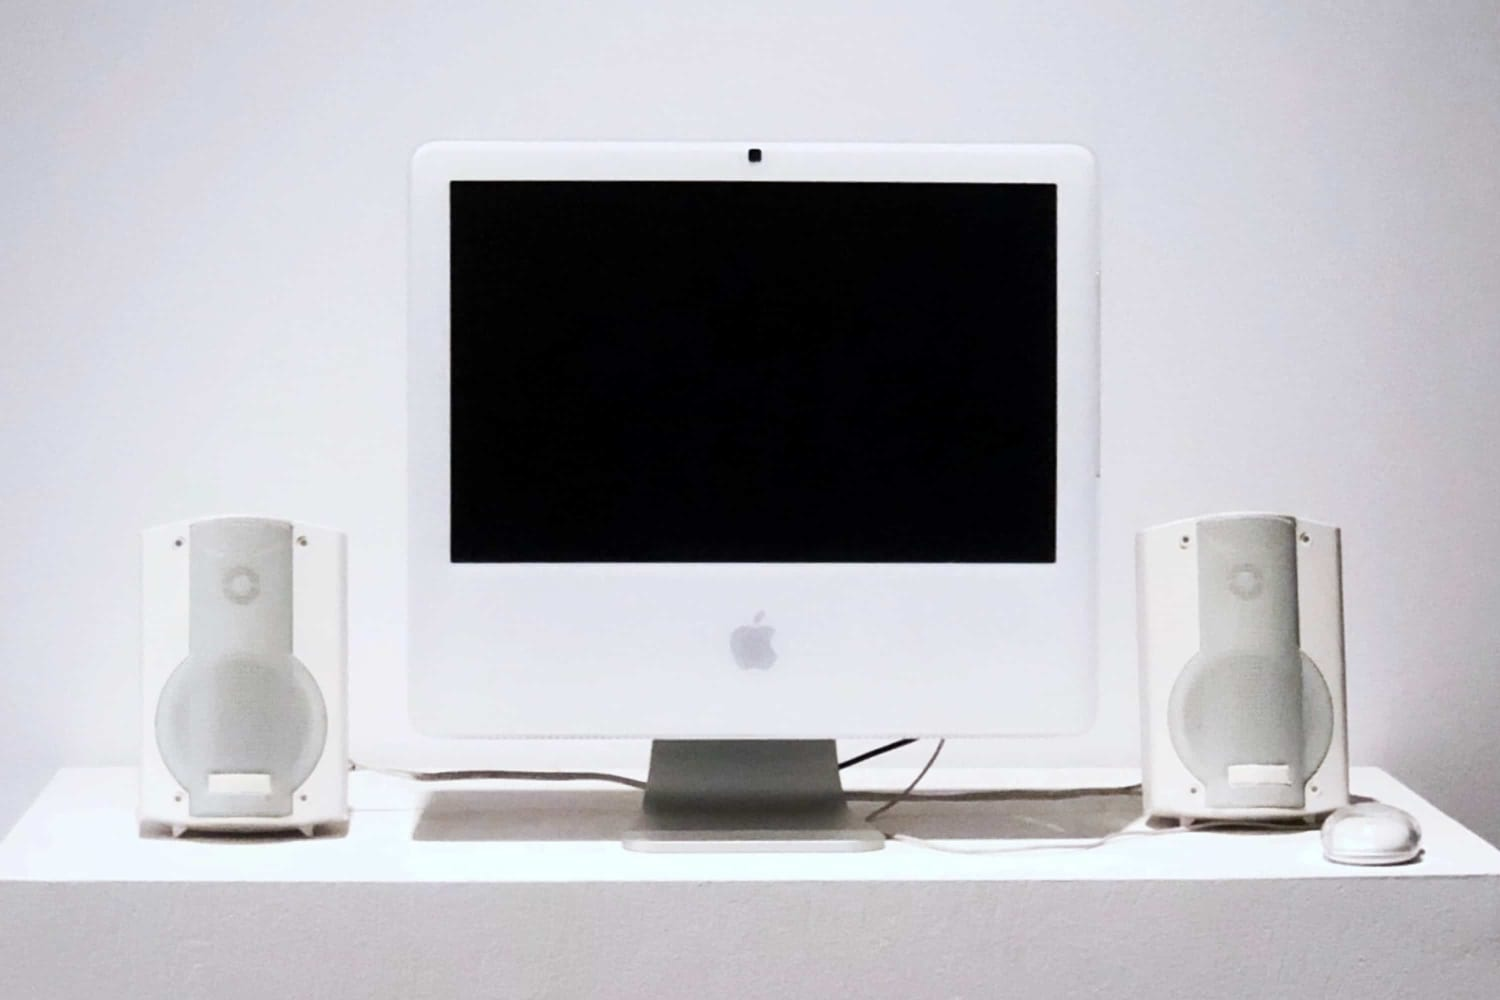 apple-retires-several-imacs-to-vintage-products-20201201-1